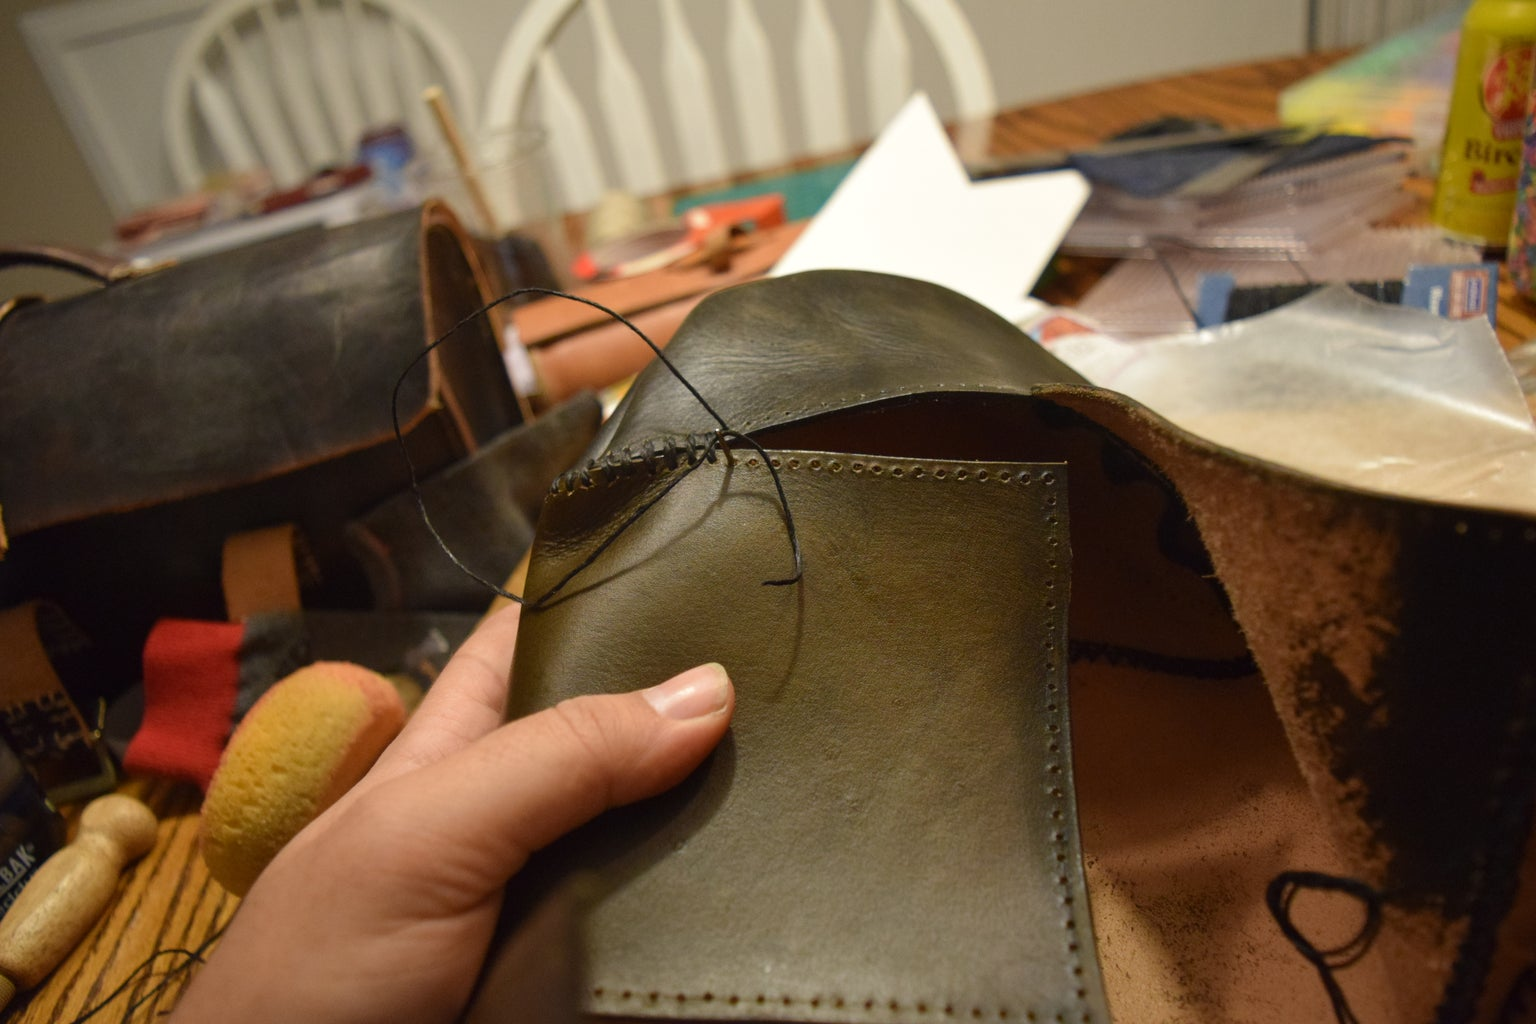 Attaching Our Toe and Heel With Cross Stitching